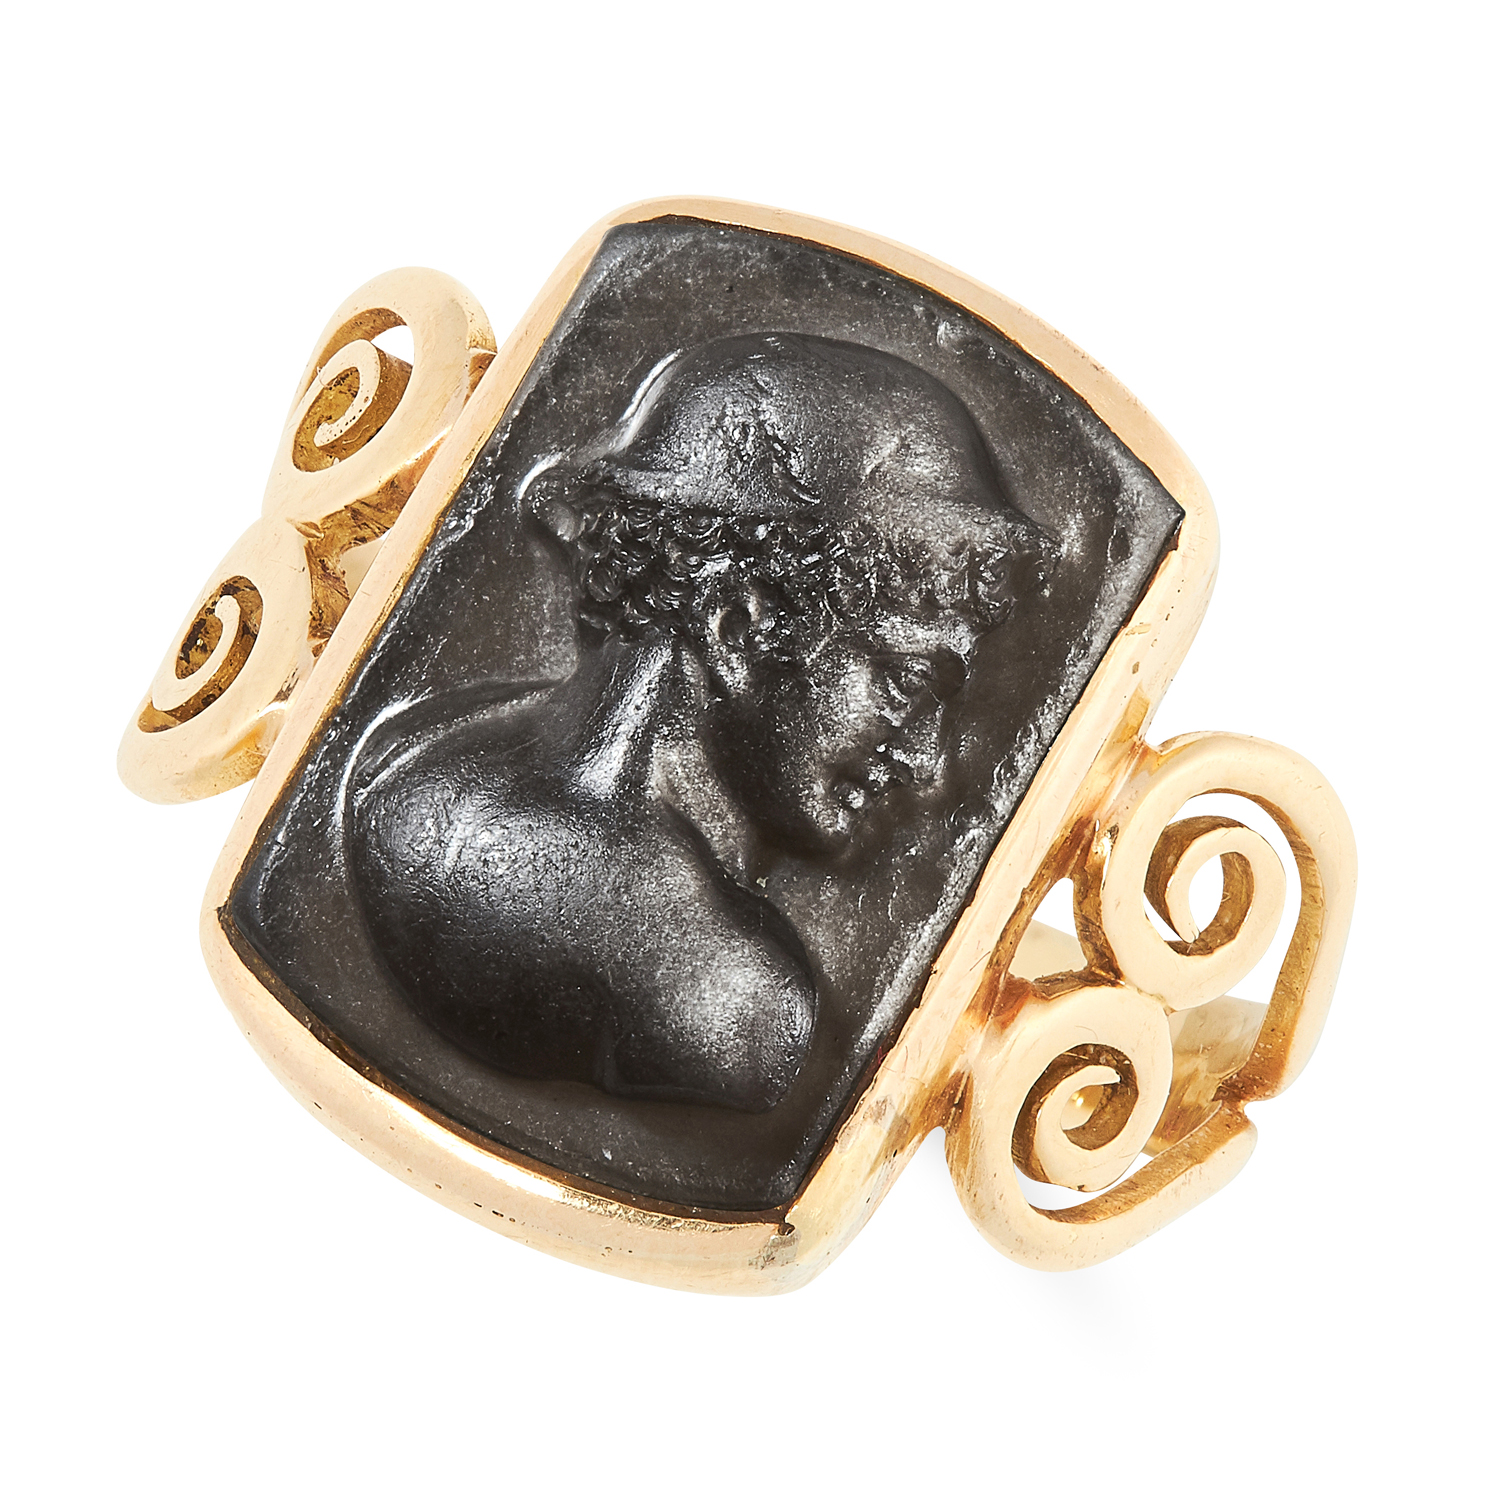 AN ANTIQUE HARDSTONE CAMEO RING, 1903 in 18ct yellow gold, set with a carved cameo depicting a